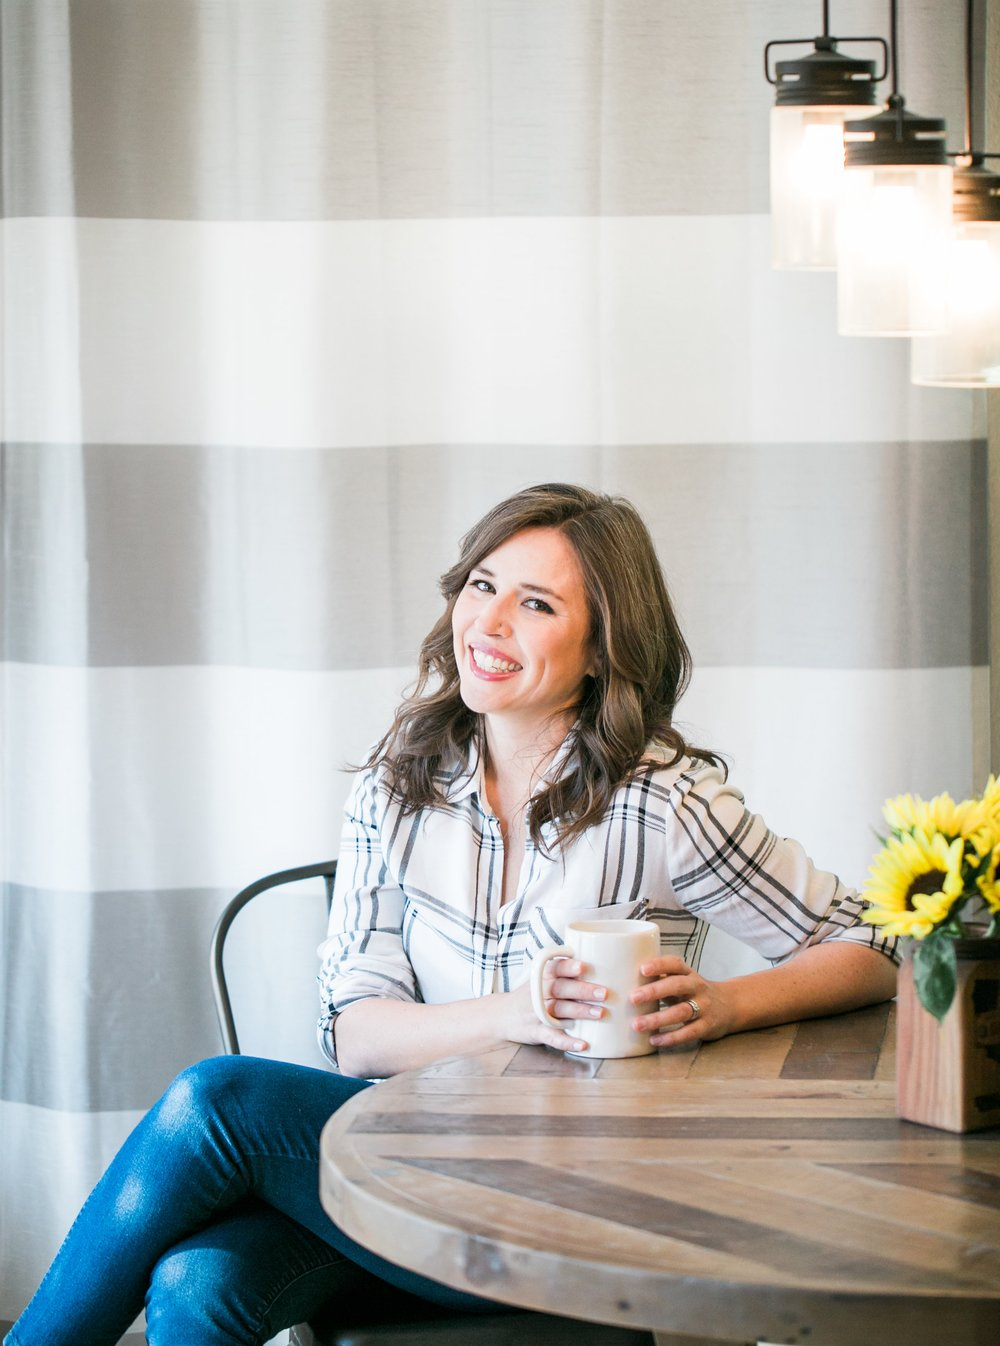 Carly Adams, Professional Organizer & Owner of Tidy Revival in Sacramento, CA.